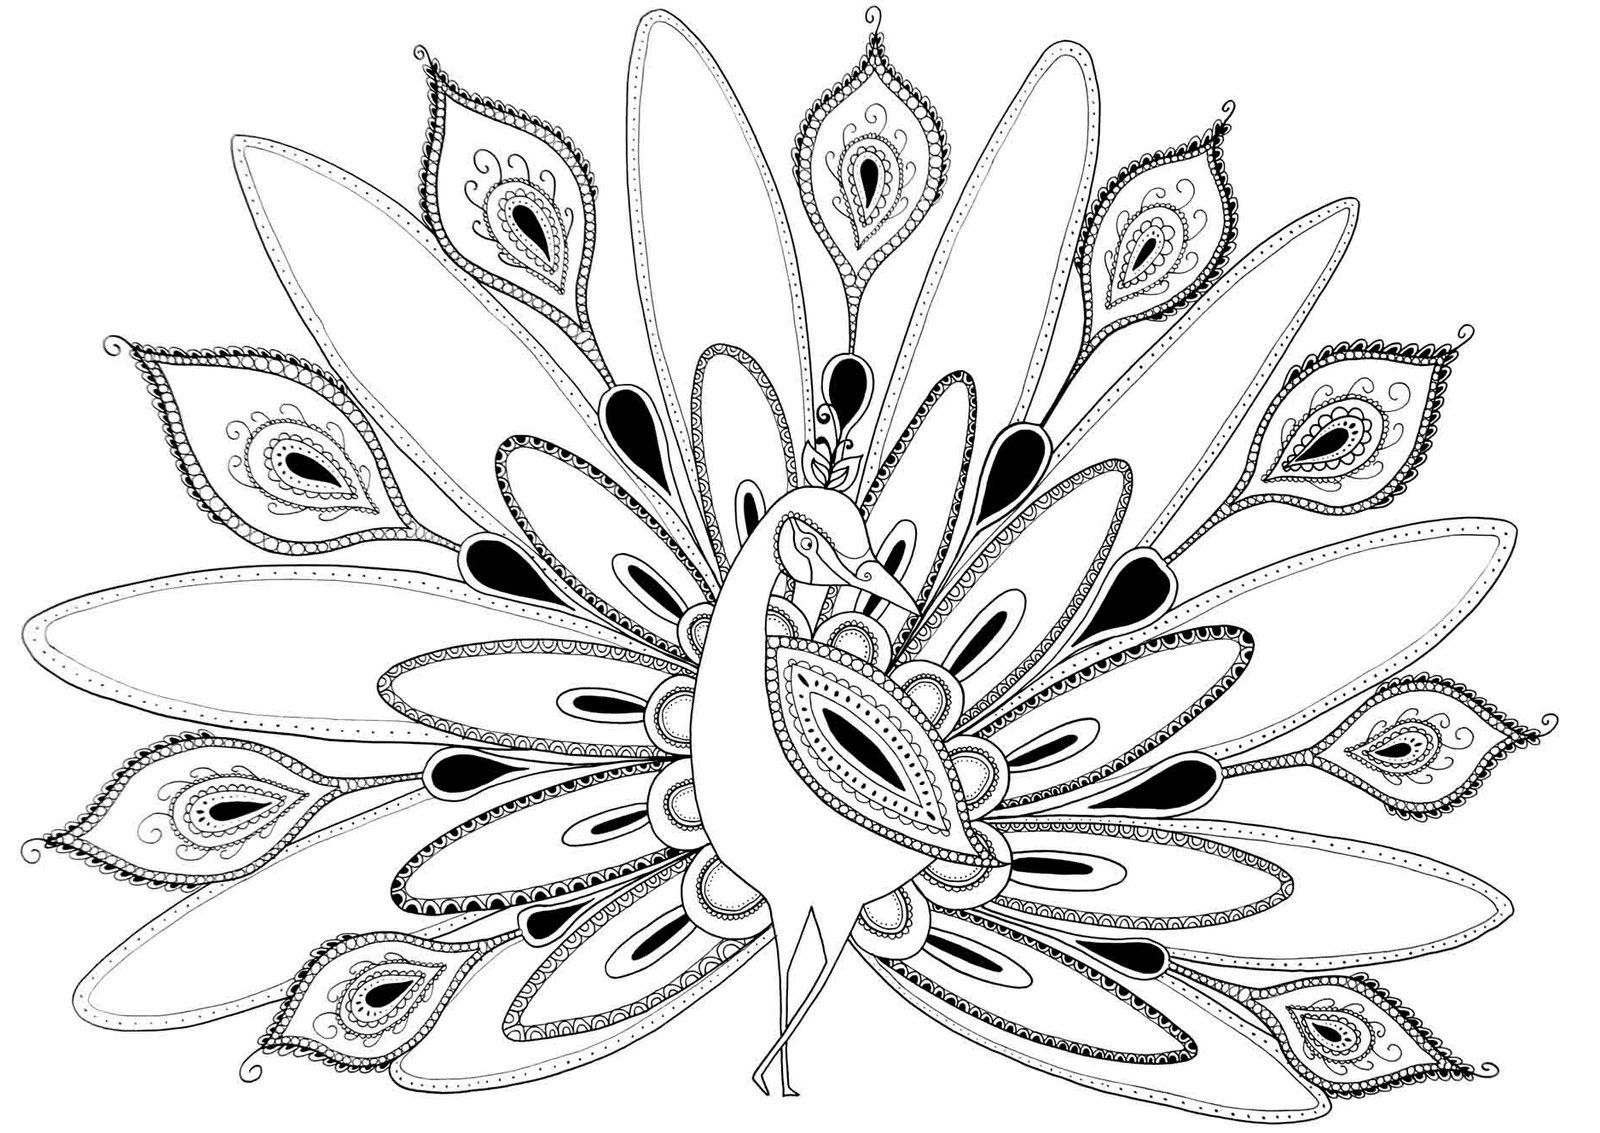 cool coloring sheets for teenagers cool coloring pages for adults peacock coloring home sheets for teenagers coloring cool